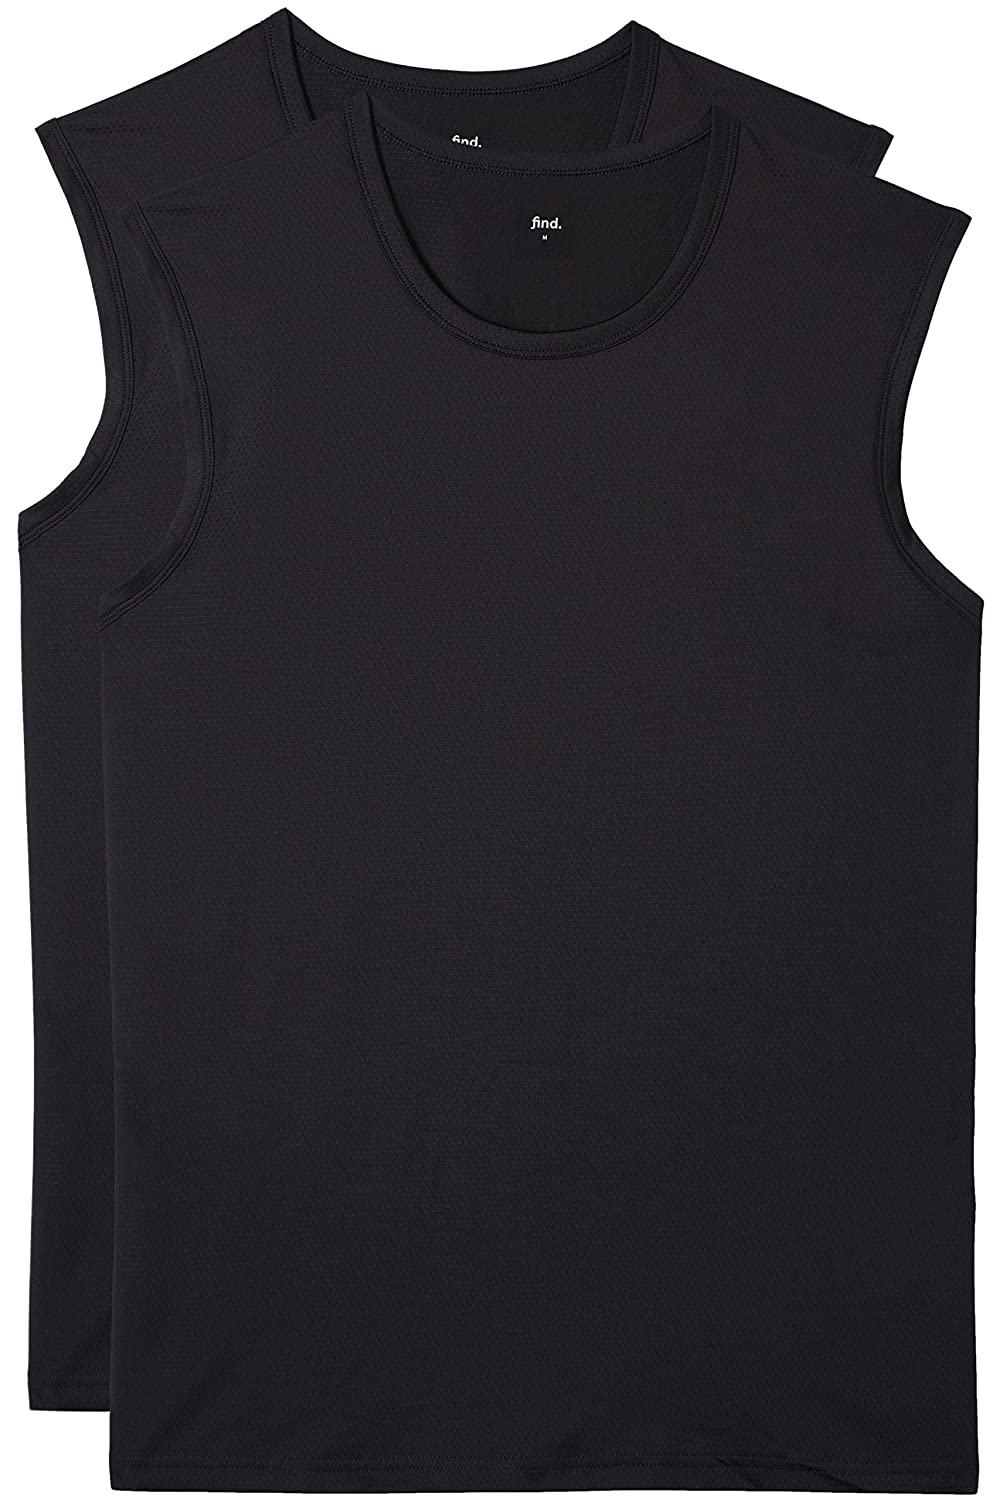 Mens Sports Vest Mesh Fabric and Crew-Neck find Pack of 2